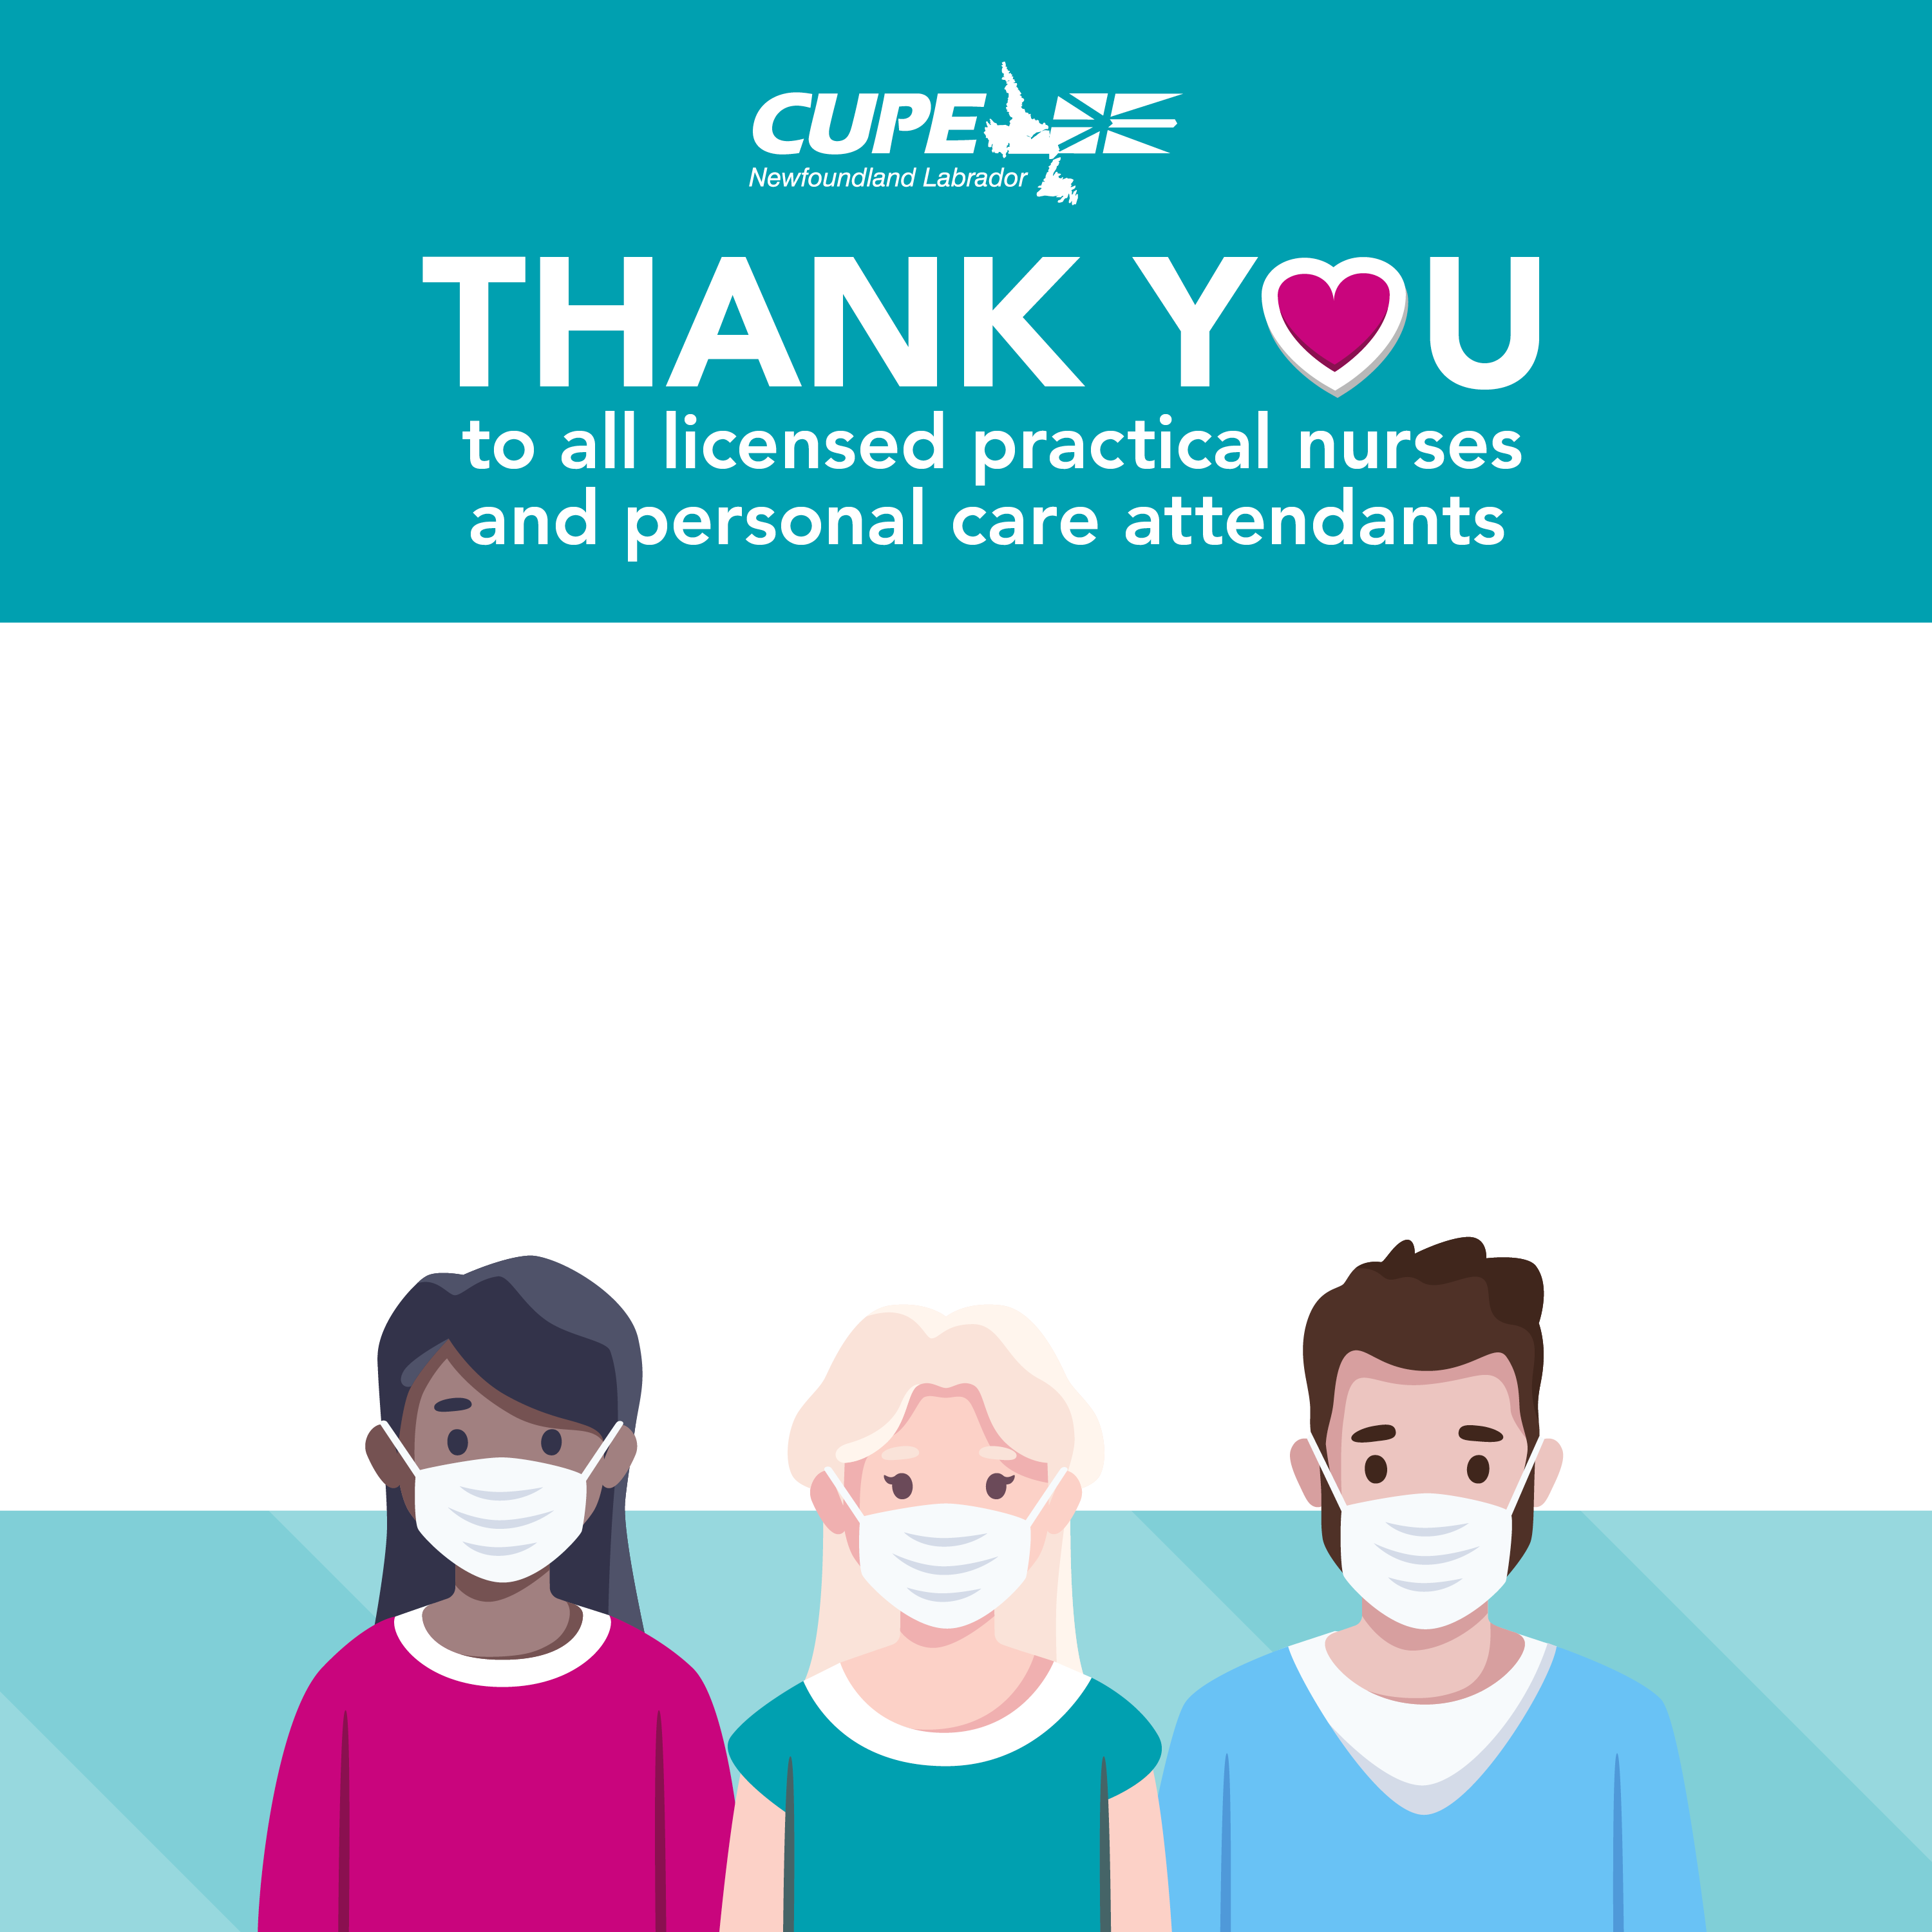 Profile photo frame. Text: Nursing Week 2021. Thank you to all licensed practical nurses and personal care attendants. Exceptional people, essential care.